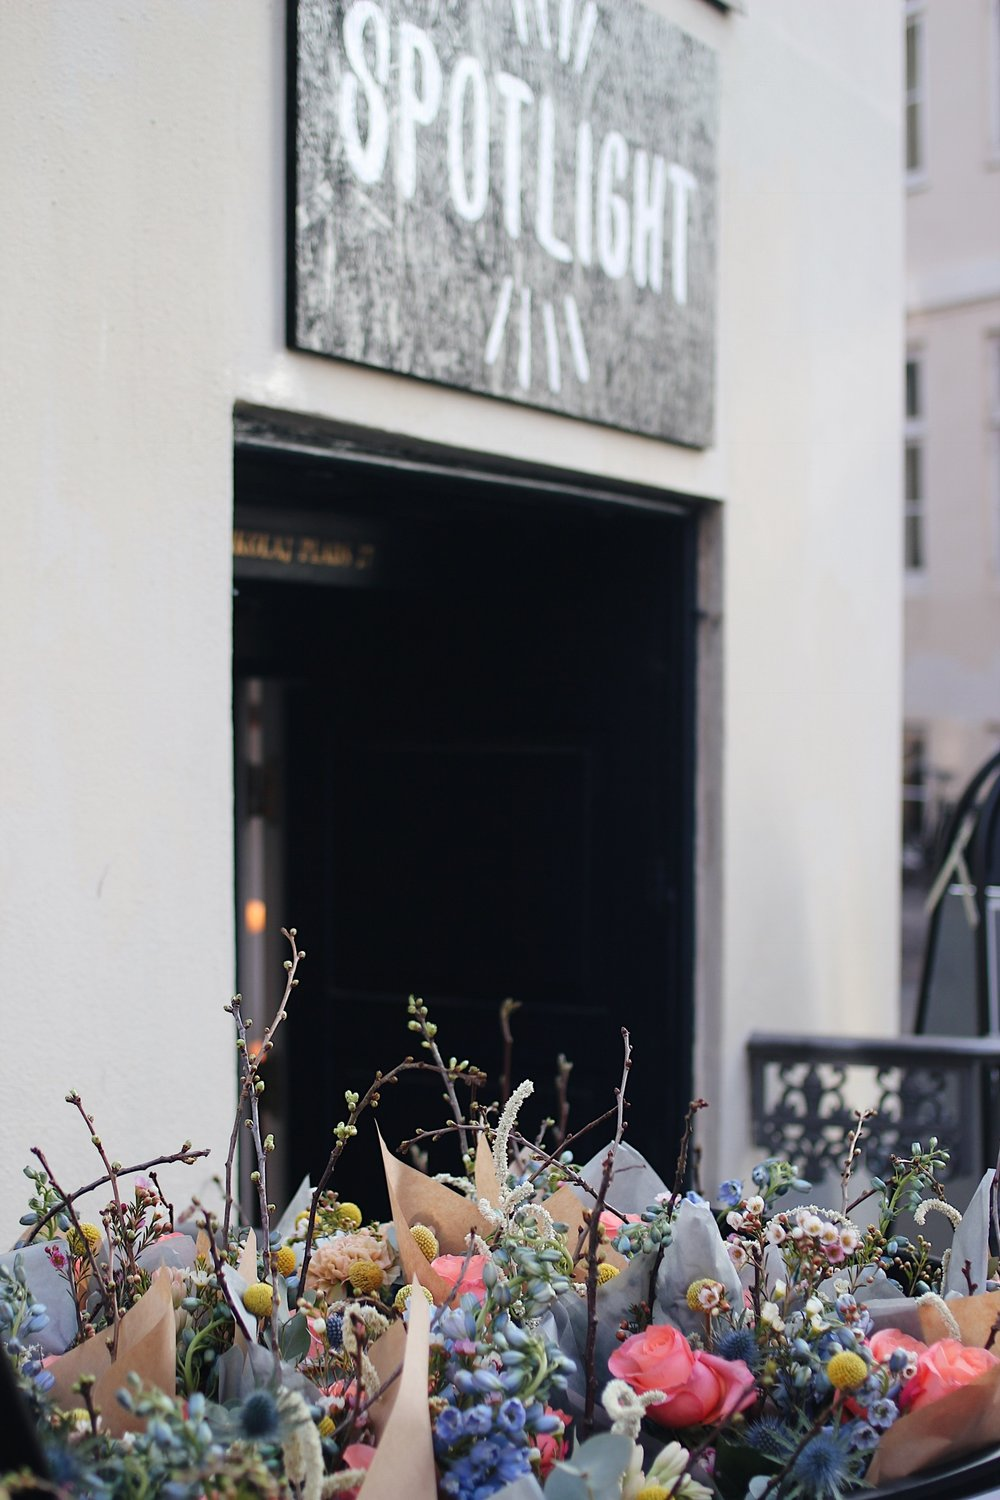 SPOTLIGHT - Nikolaj Plads 27, CopenhagenFind the Bierback's spot in this micro pop-up space in central Copenhagen.